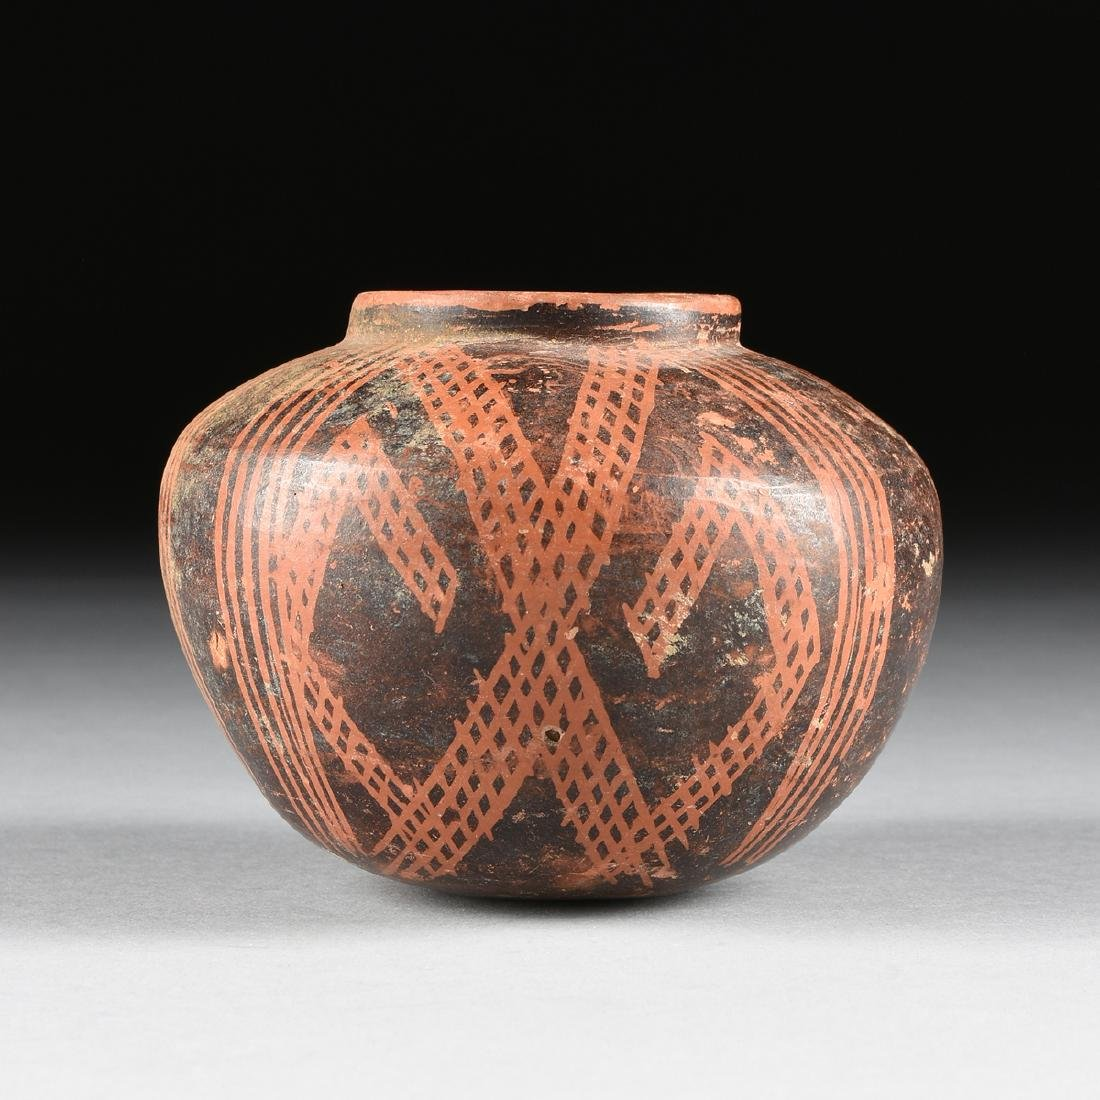 A PRE-COLUMBIAN STYLE SLIP DECORATED TERRACOTTA VASE,